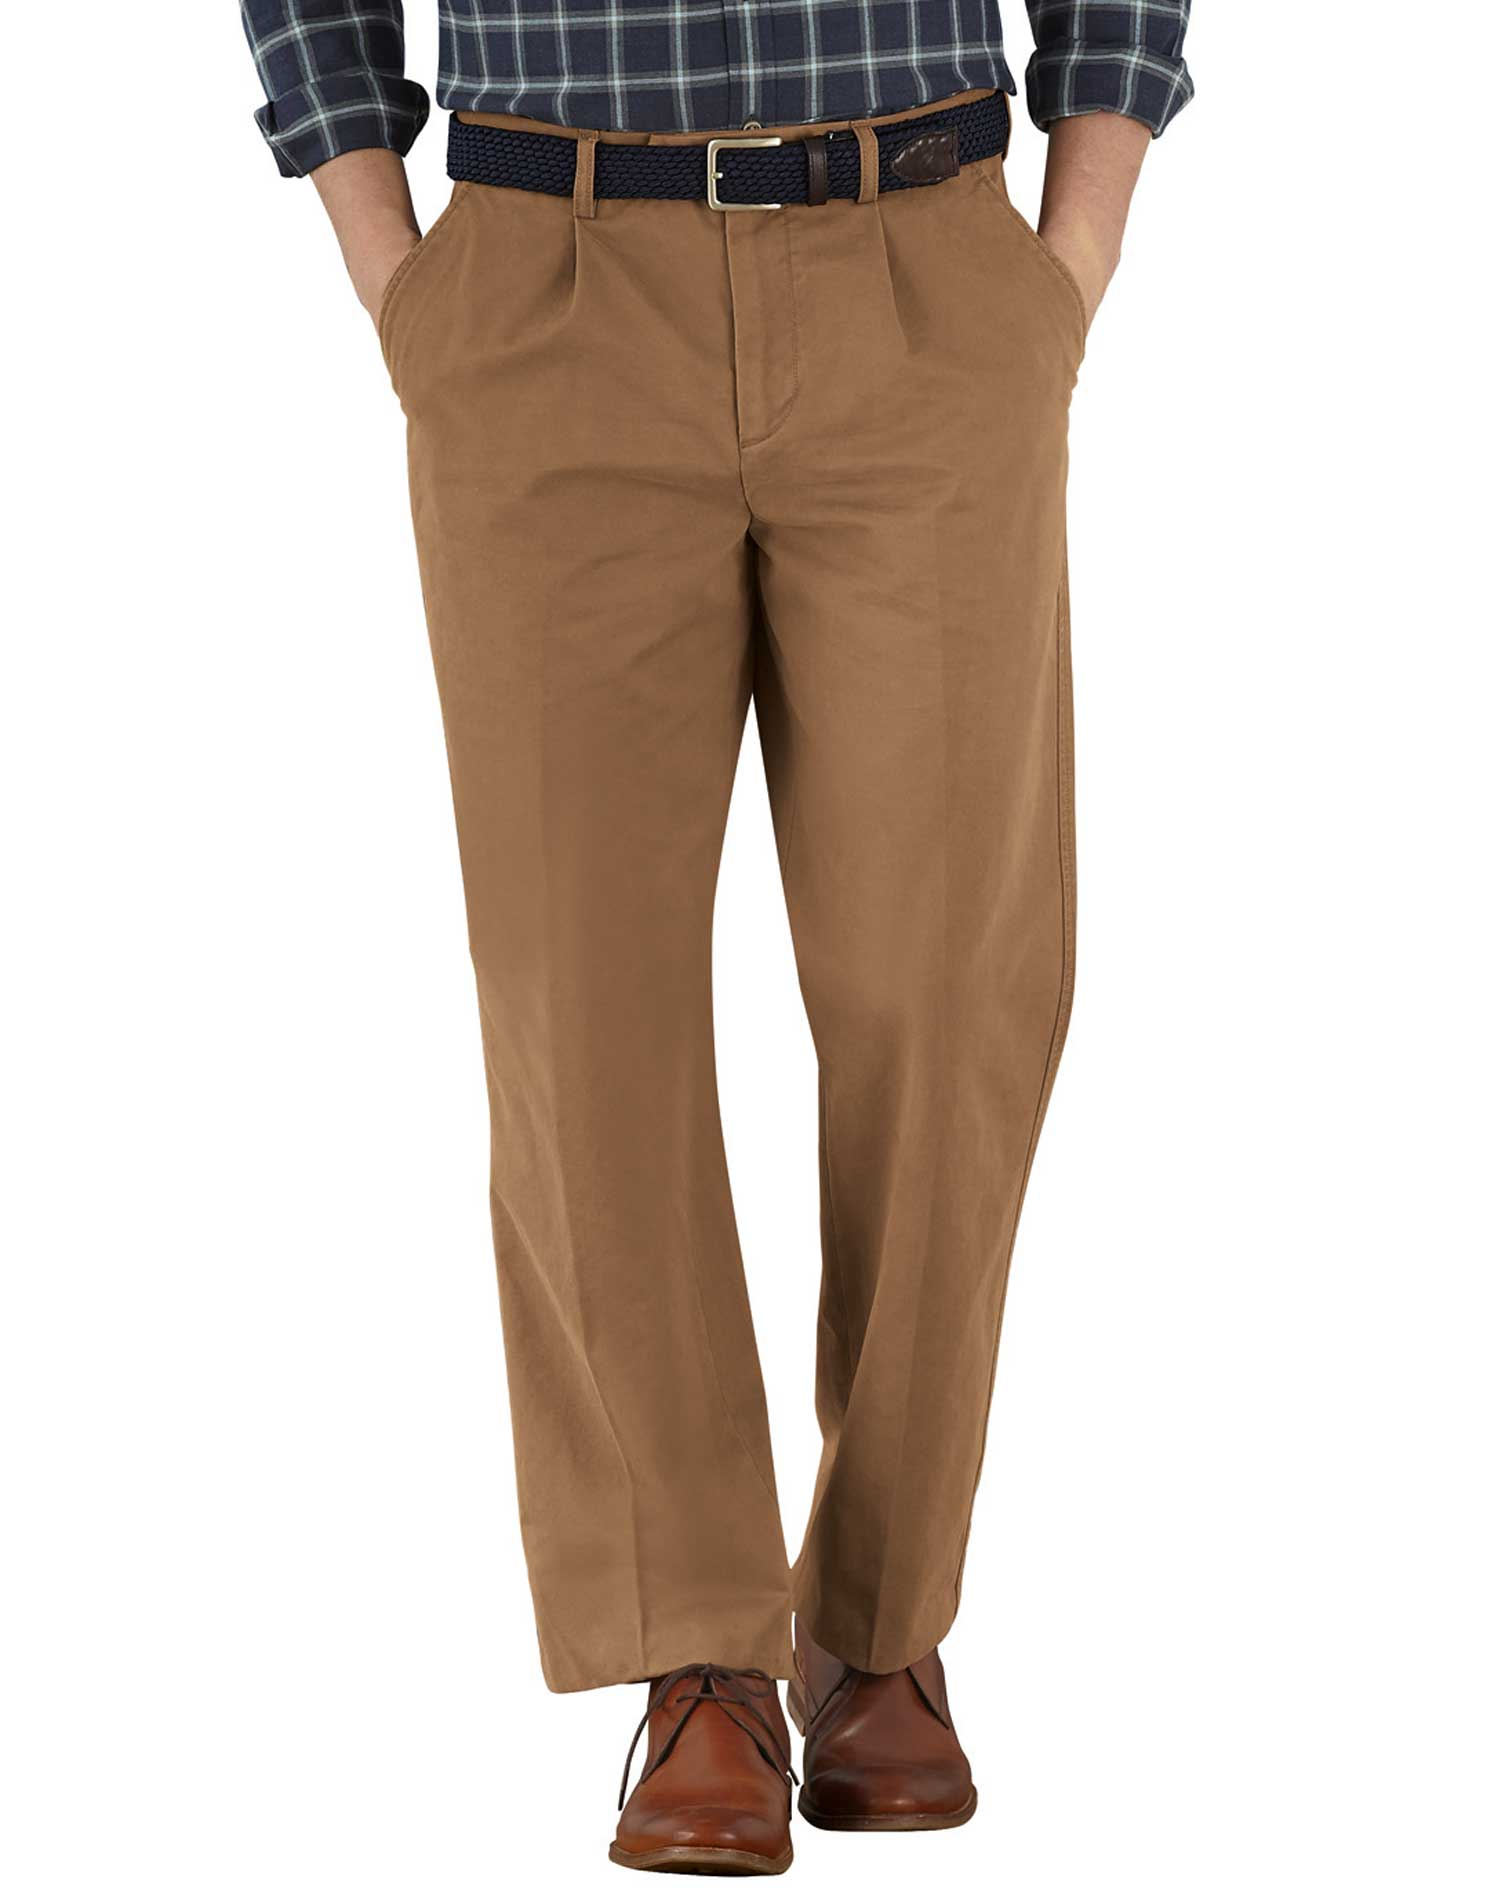 Camel Classic Fit Single Pleat Cotton Chino Trousers Size W34 L32 by Charles Tyrwhitt